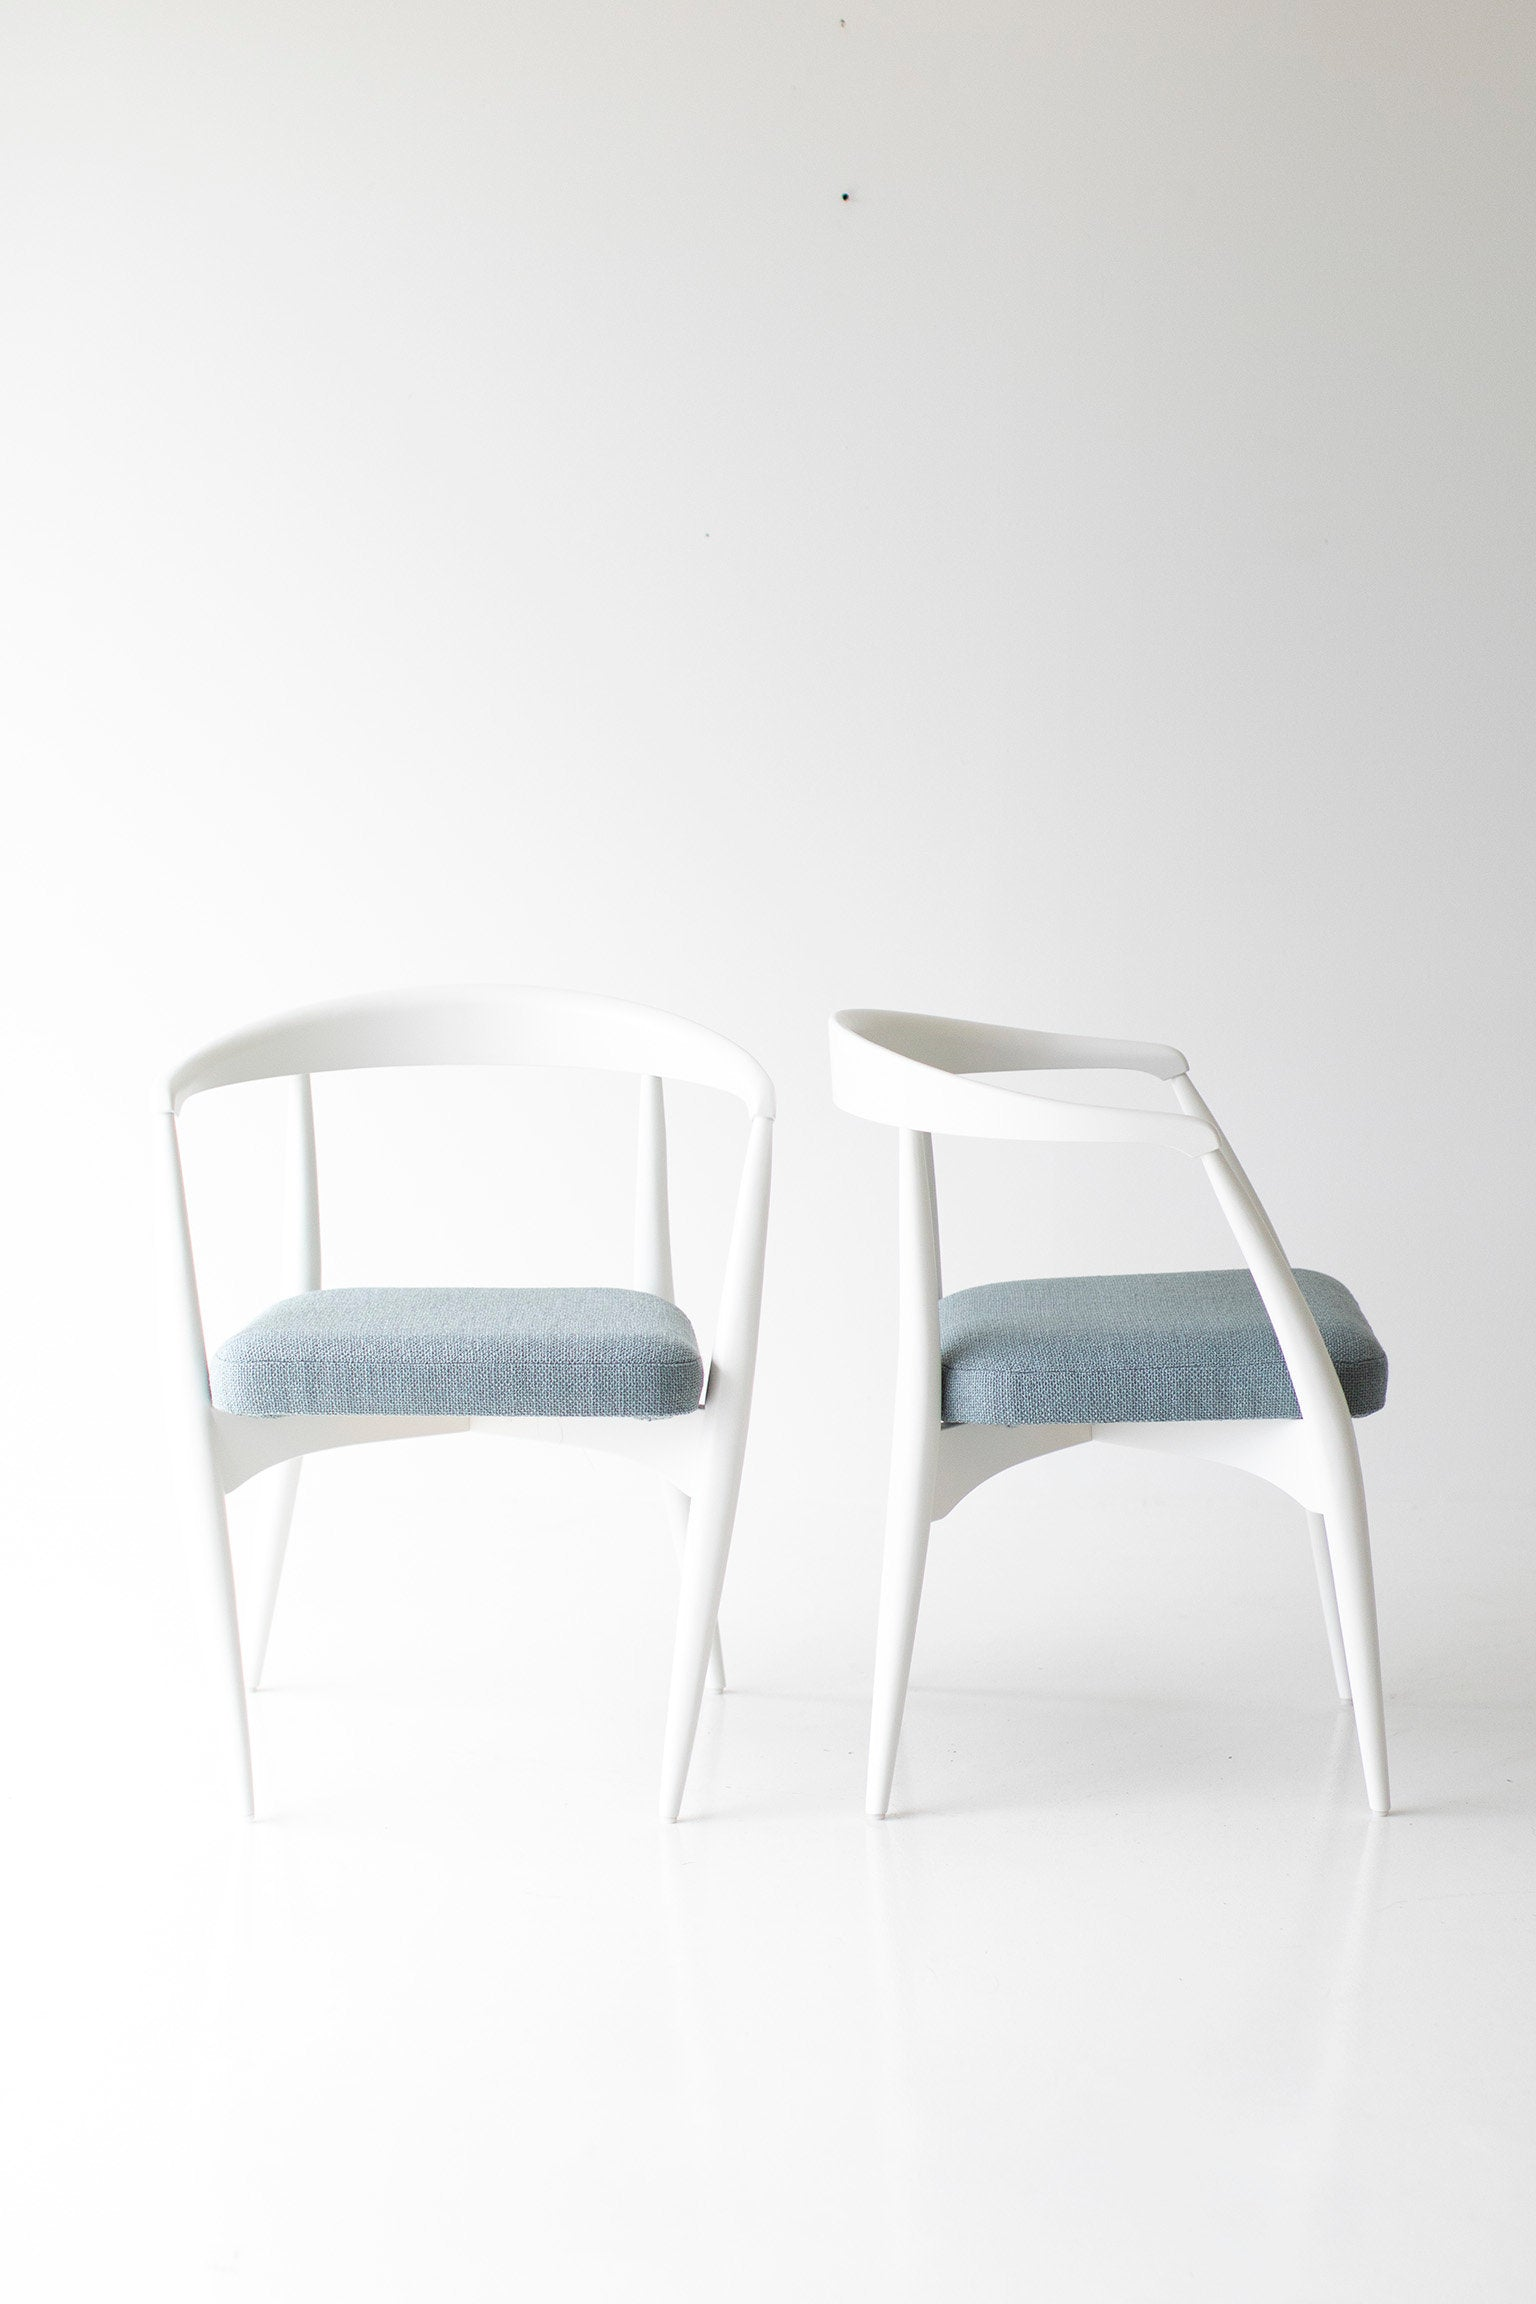 Lawrence-Peabody-White-Dining-Chairs-02